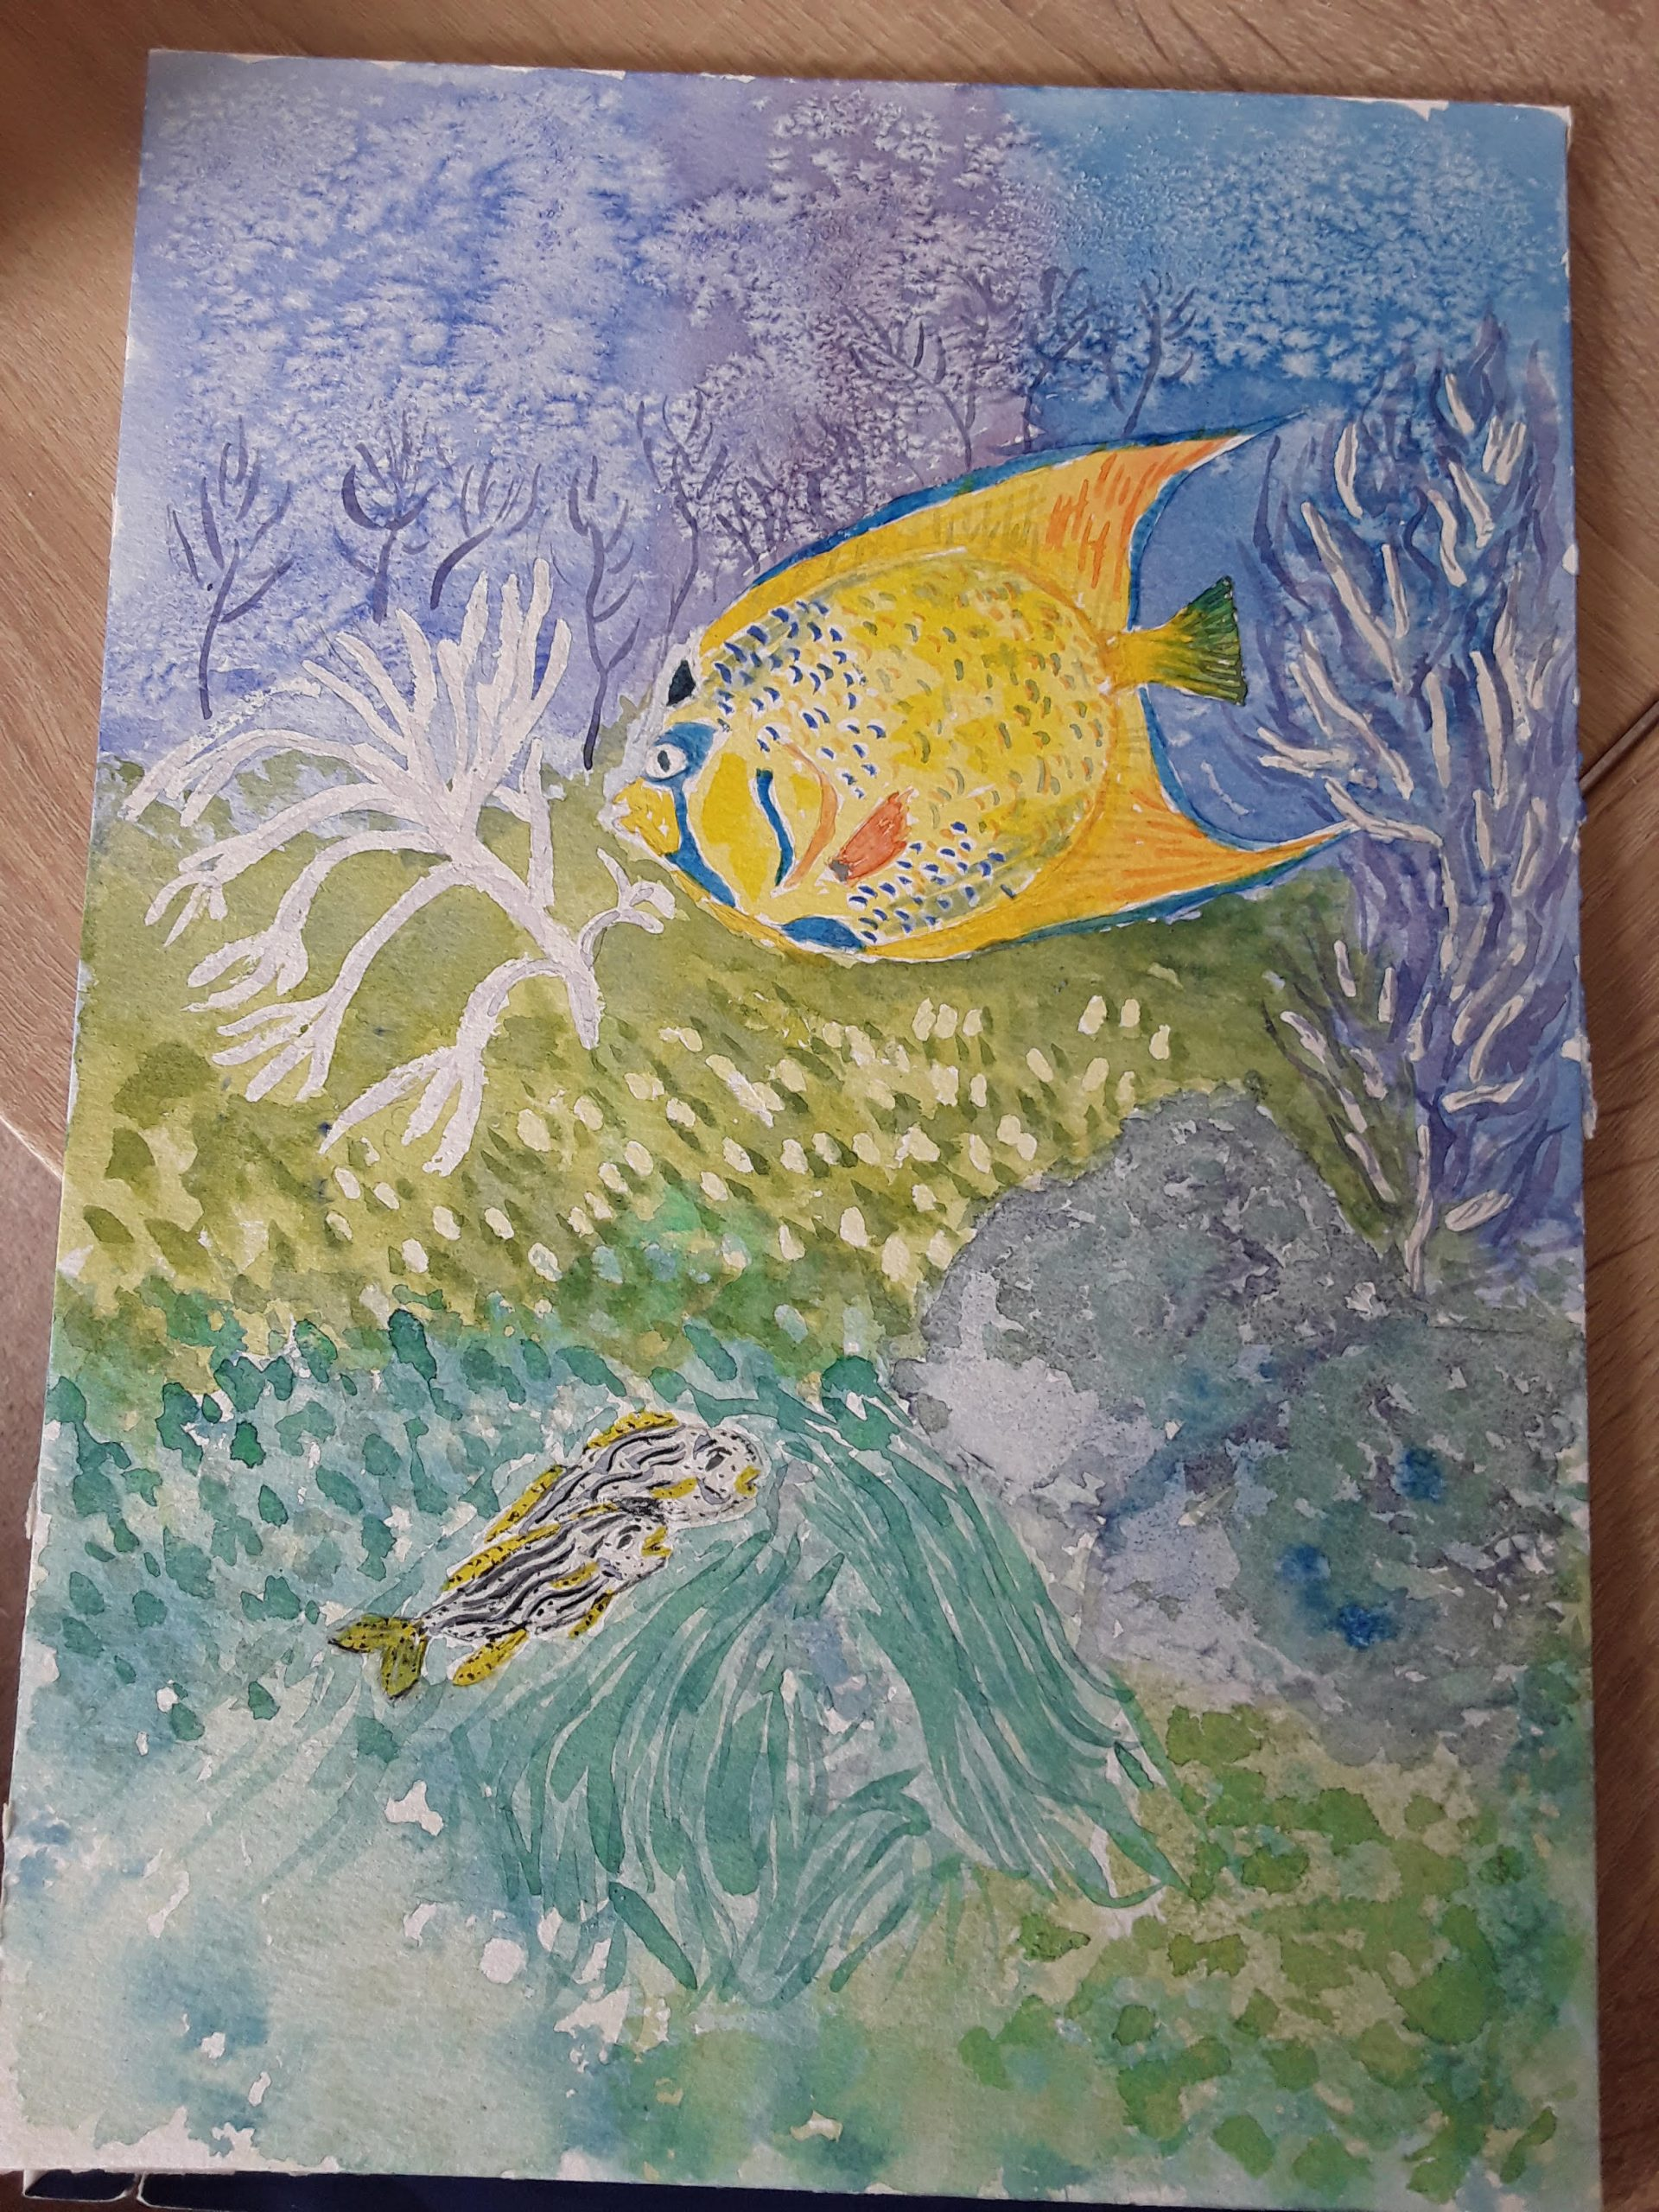 Lovely sea life scenes painted by students from online 'Fun with watercolours' course with life tuition in Worcestershire.